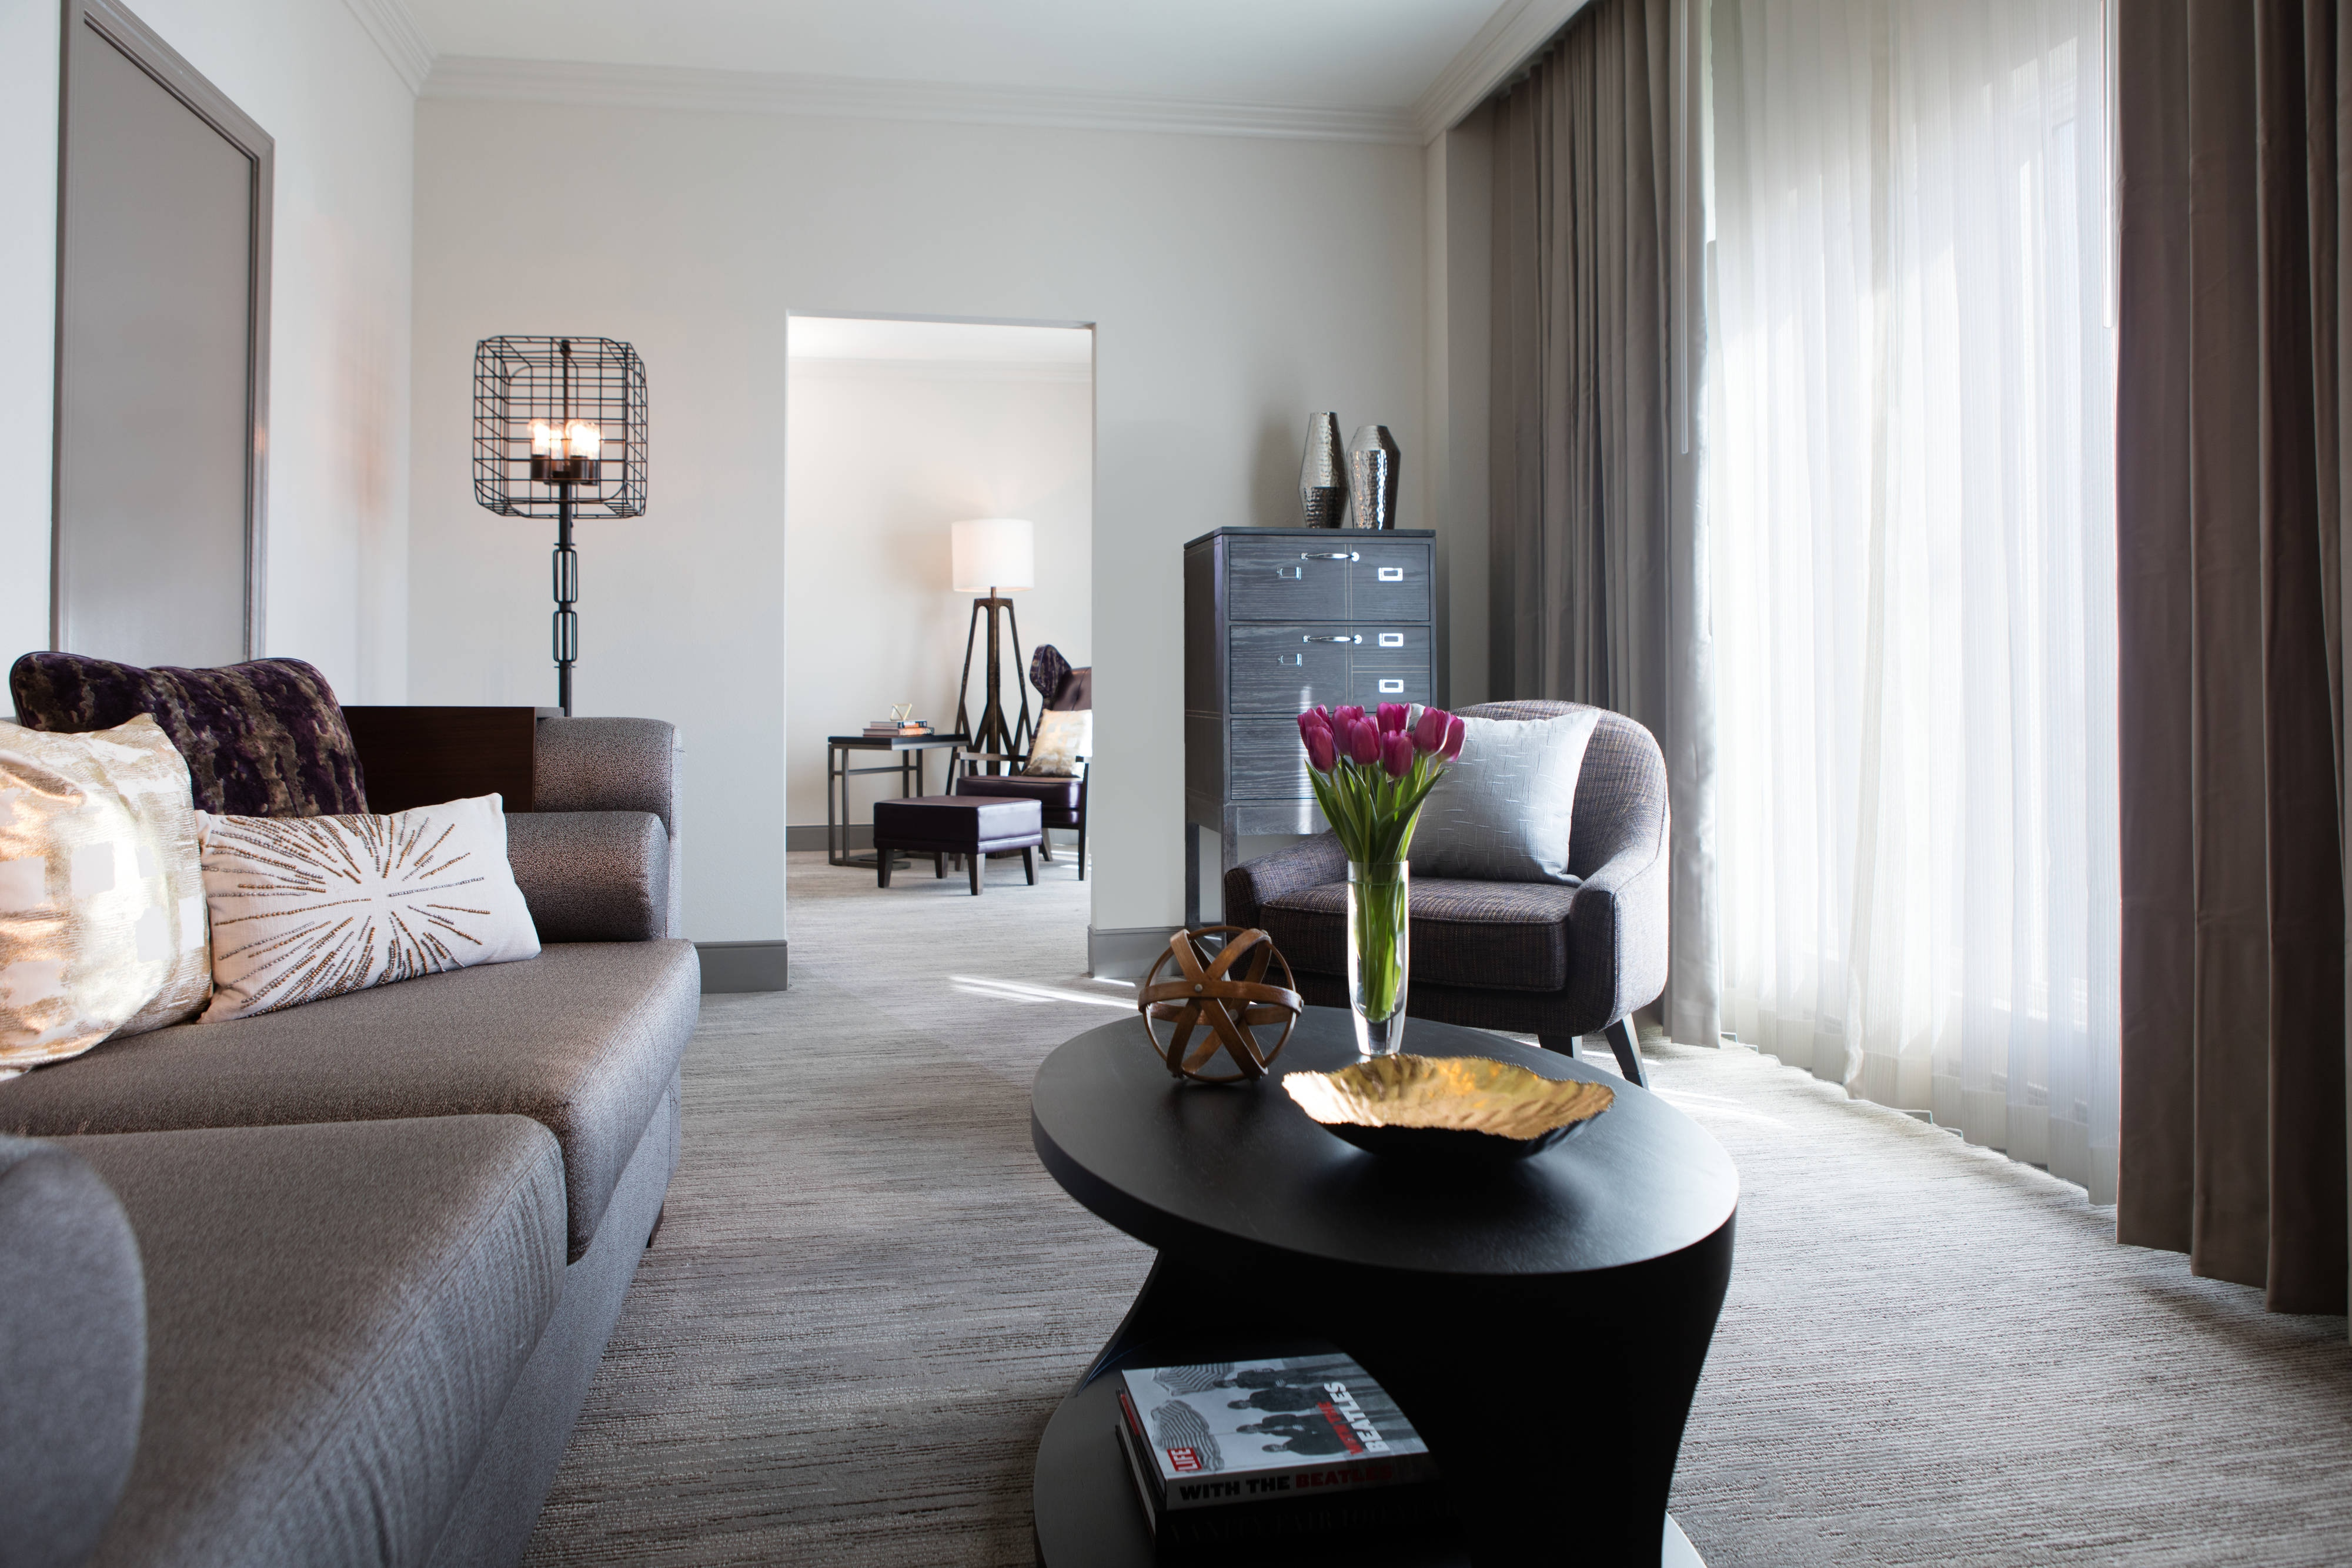 Luxury Hotel Rooms in Oklahoma City | Renaissance Waterford ...